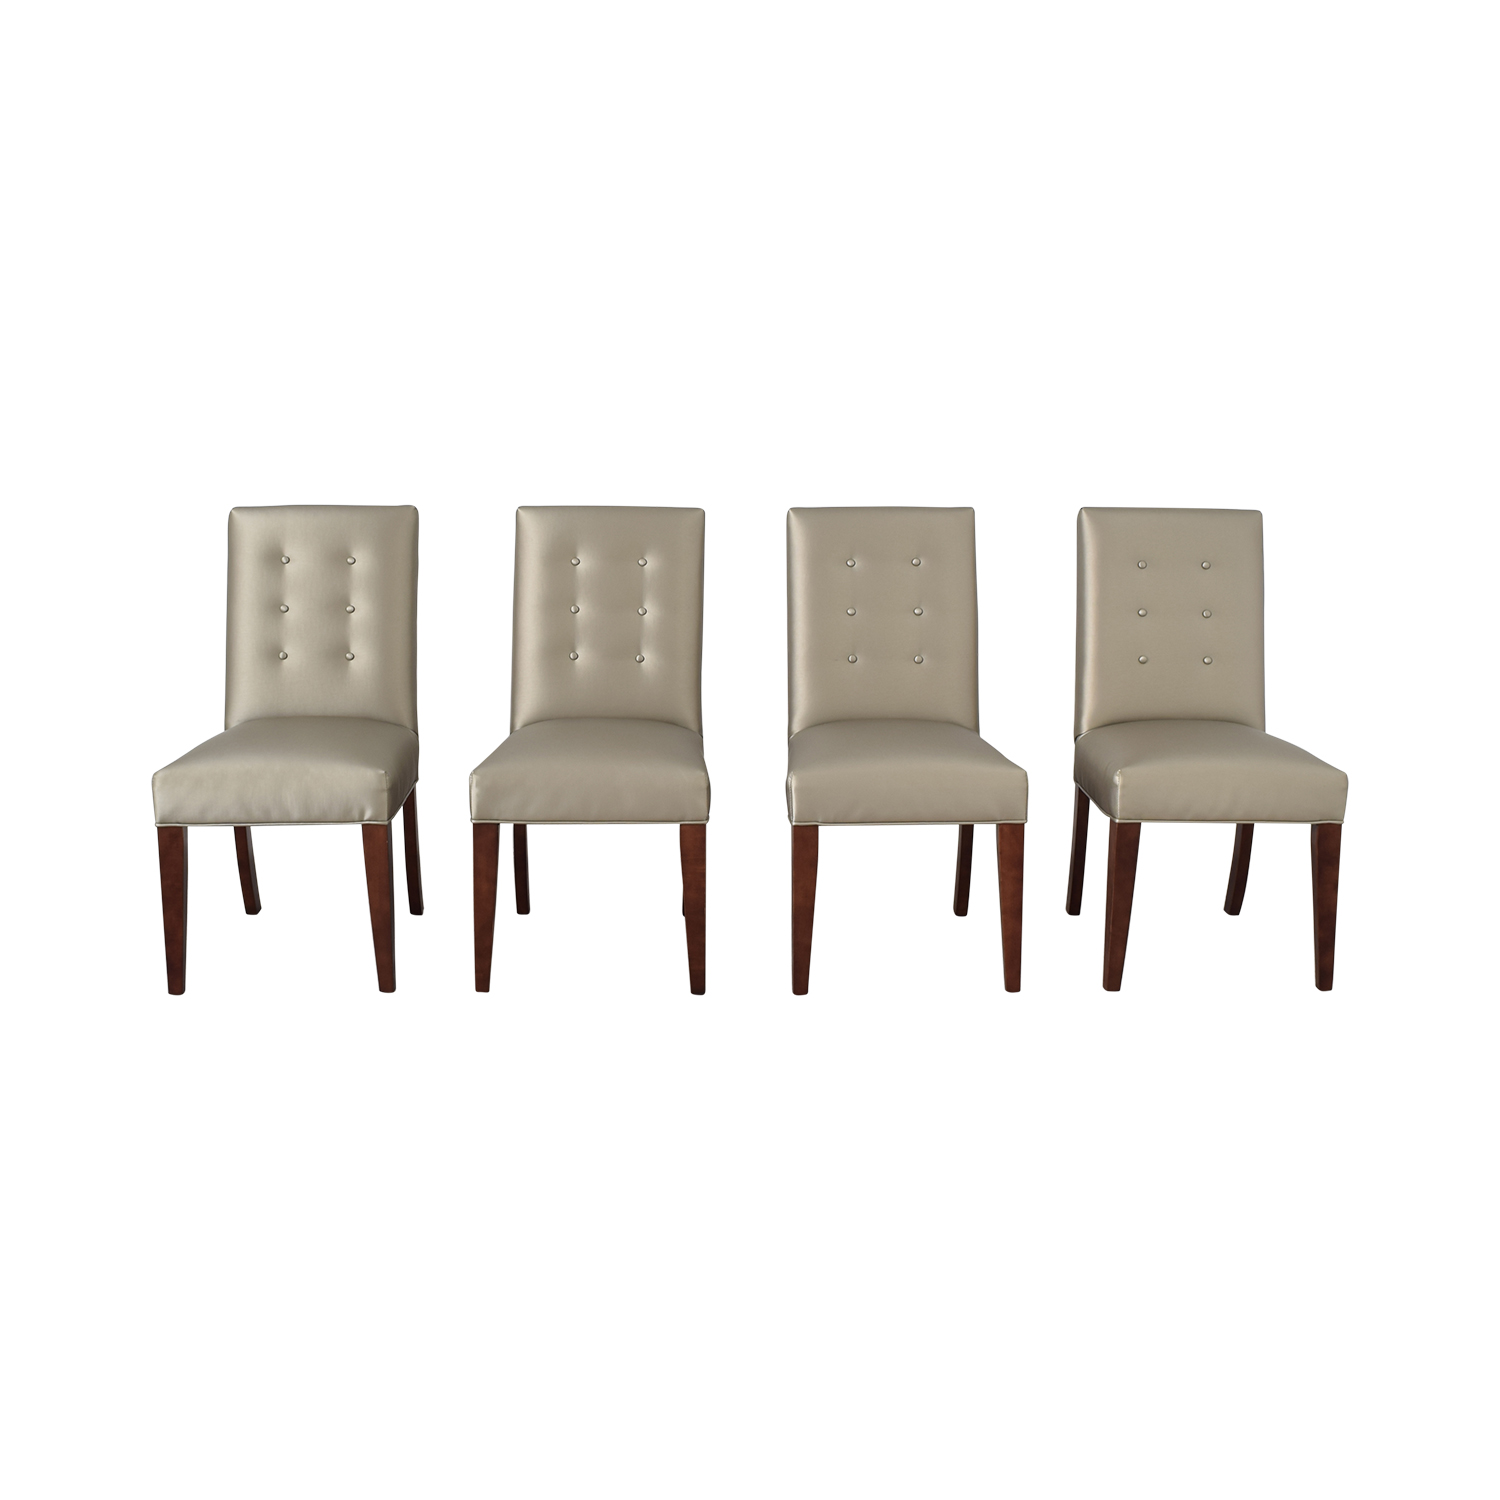 Mitchell Gold + Bob Williams Mitchell Gold + Bob Williams Gisell Side Chairs gray